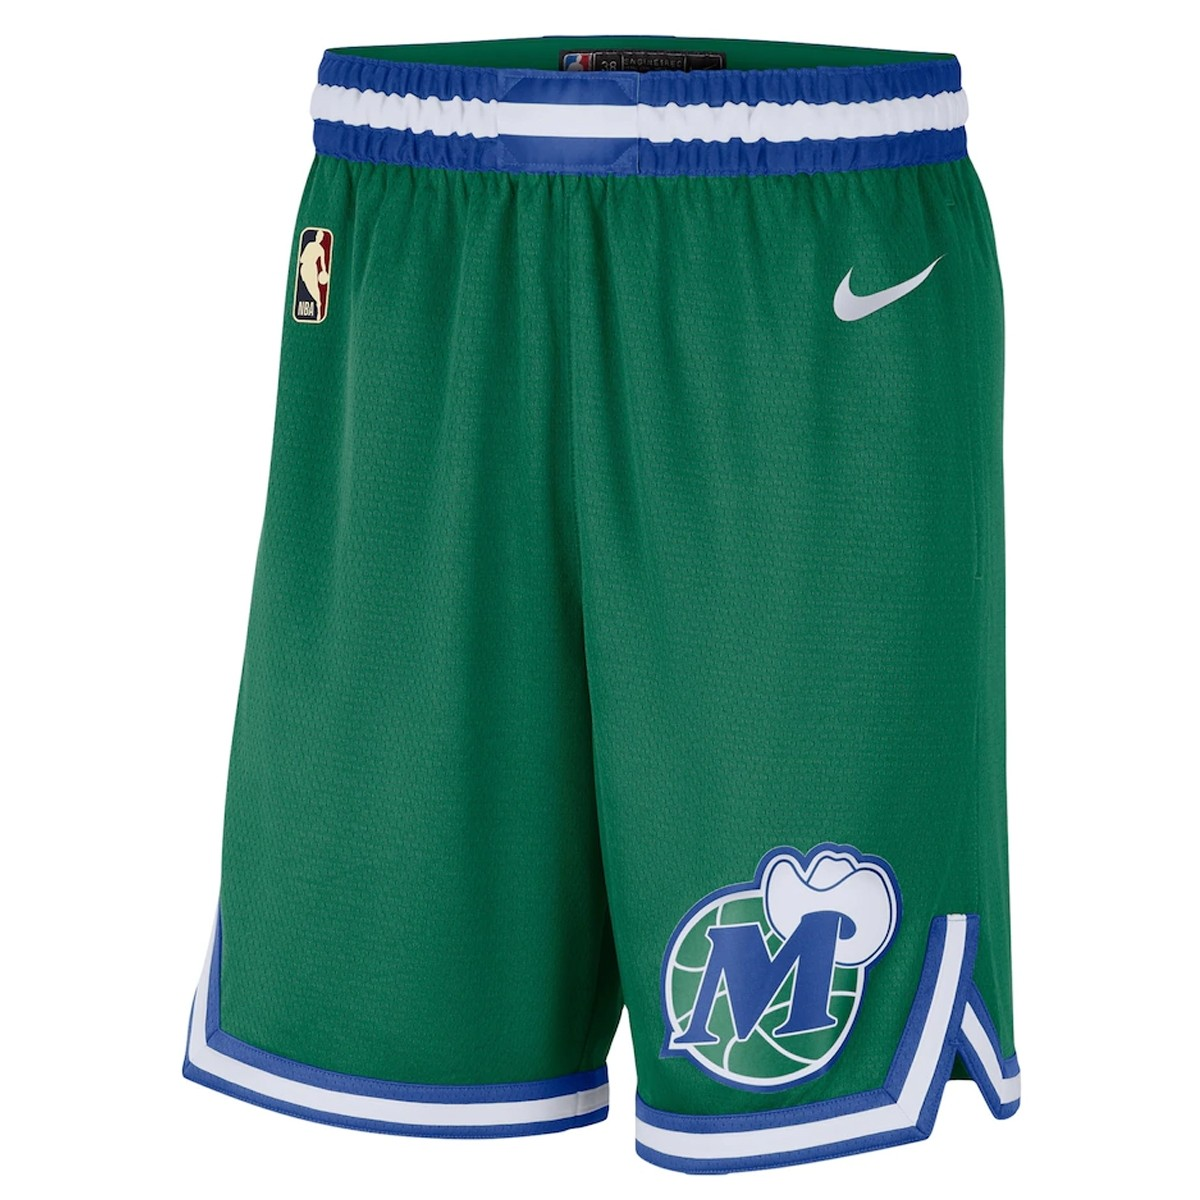 Nike Jr NBA Dallas Swingman Short 'Classic Edition'